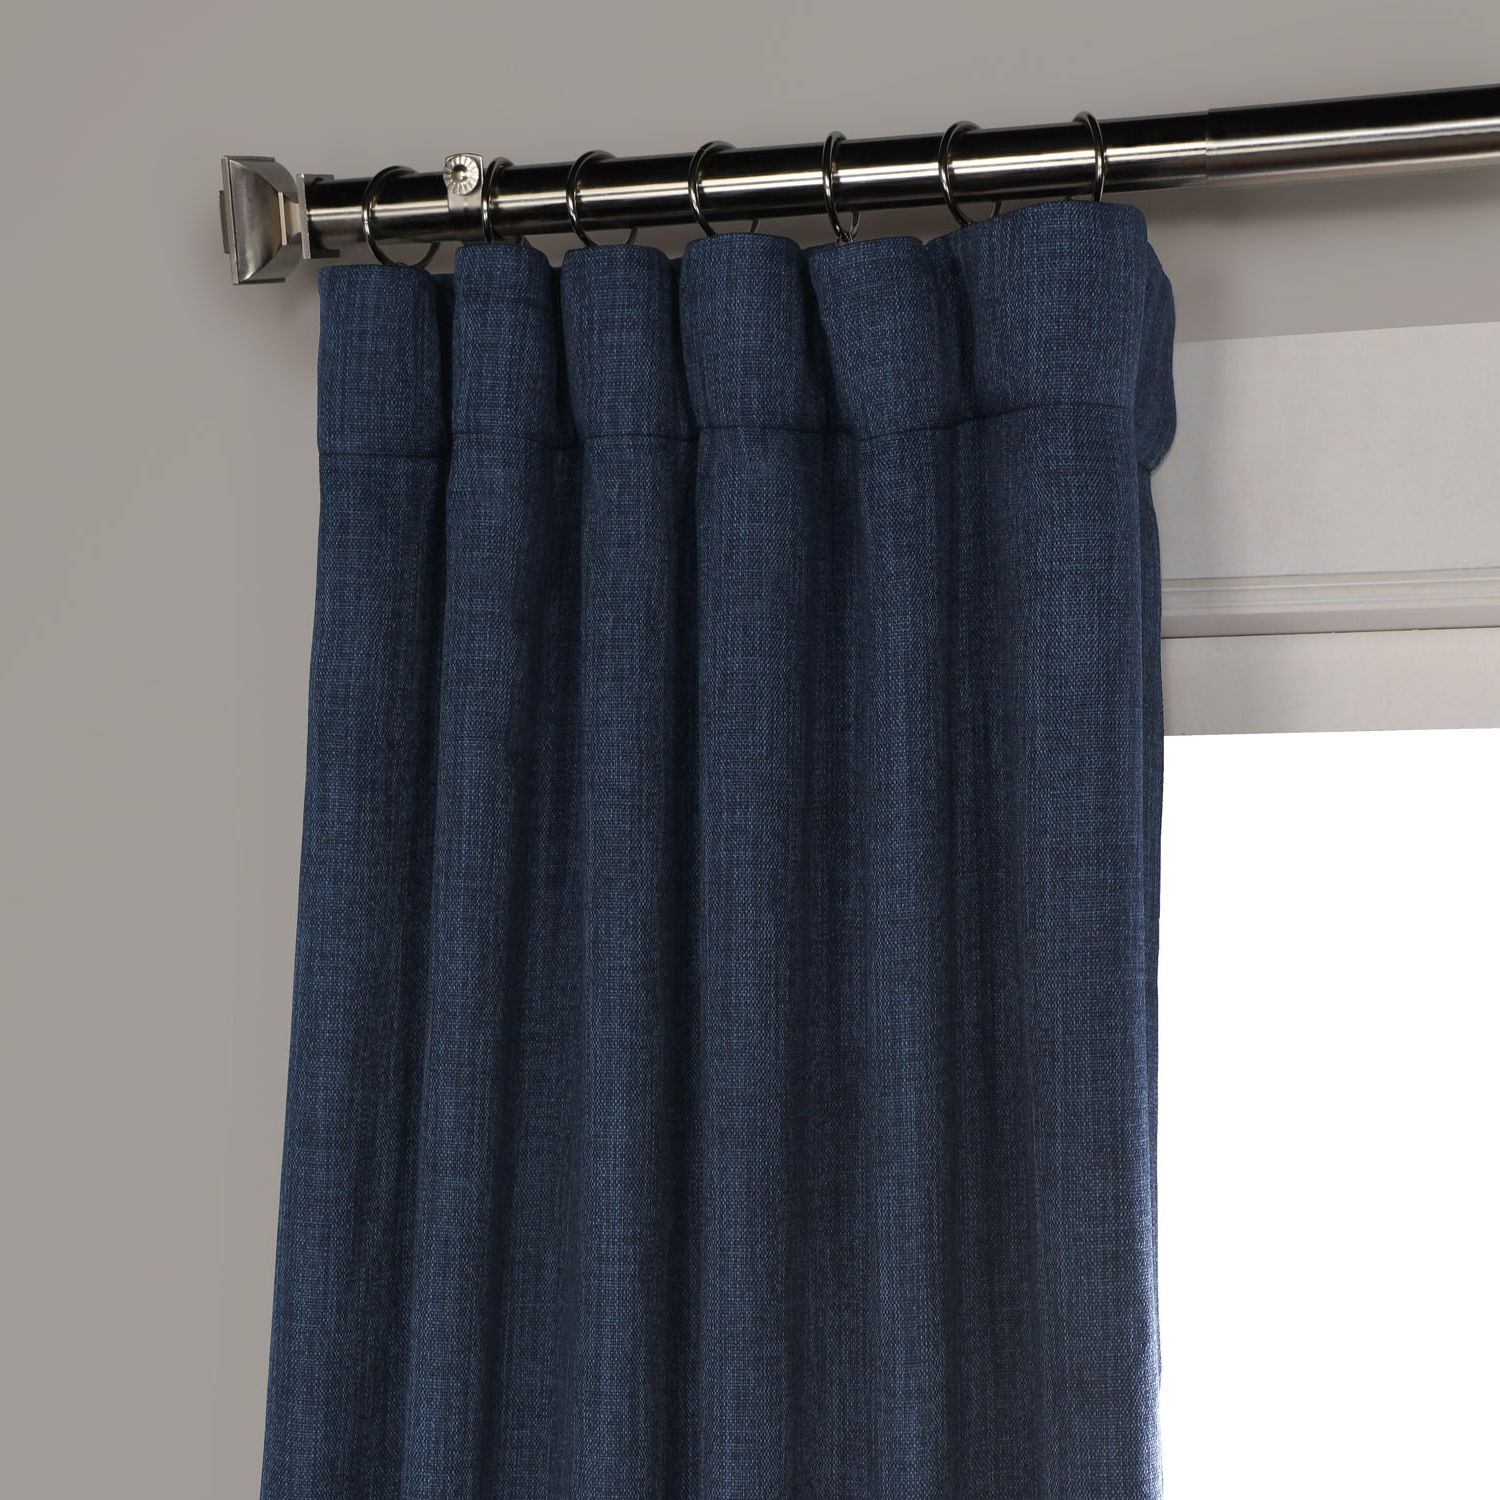 Newest Faux Linen Extra Wide Blackout Curtains With Indigo Faux Linen Blackout Curtain (View 13 of 21)